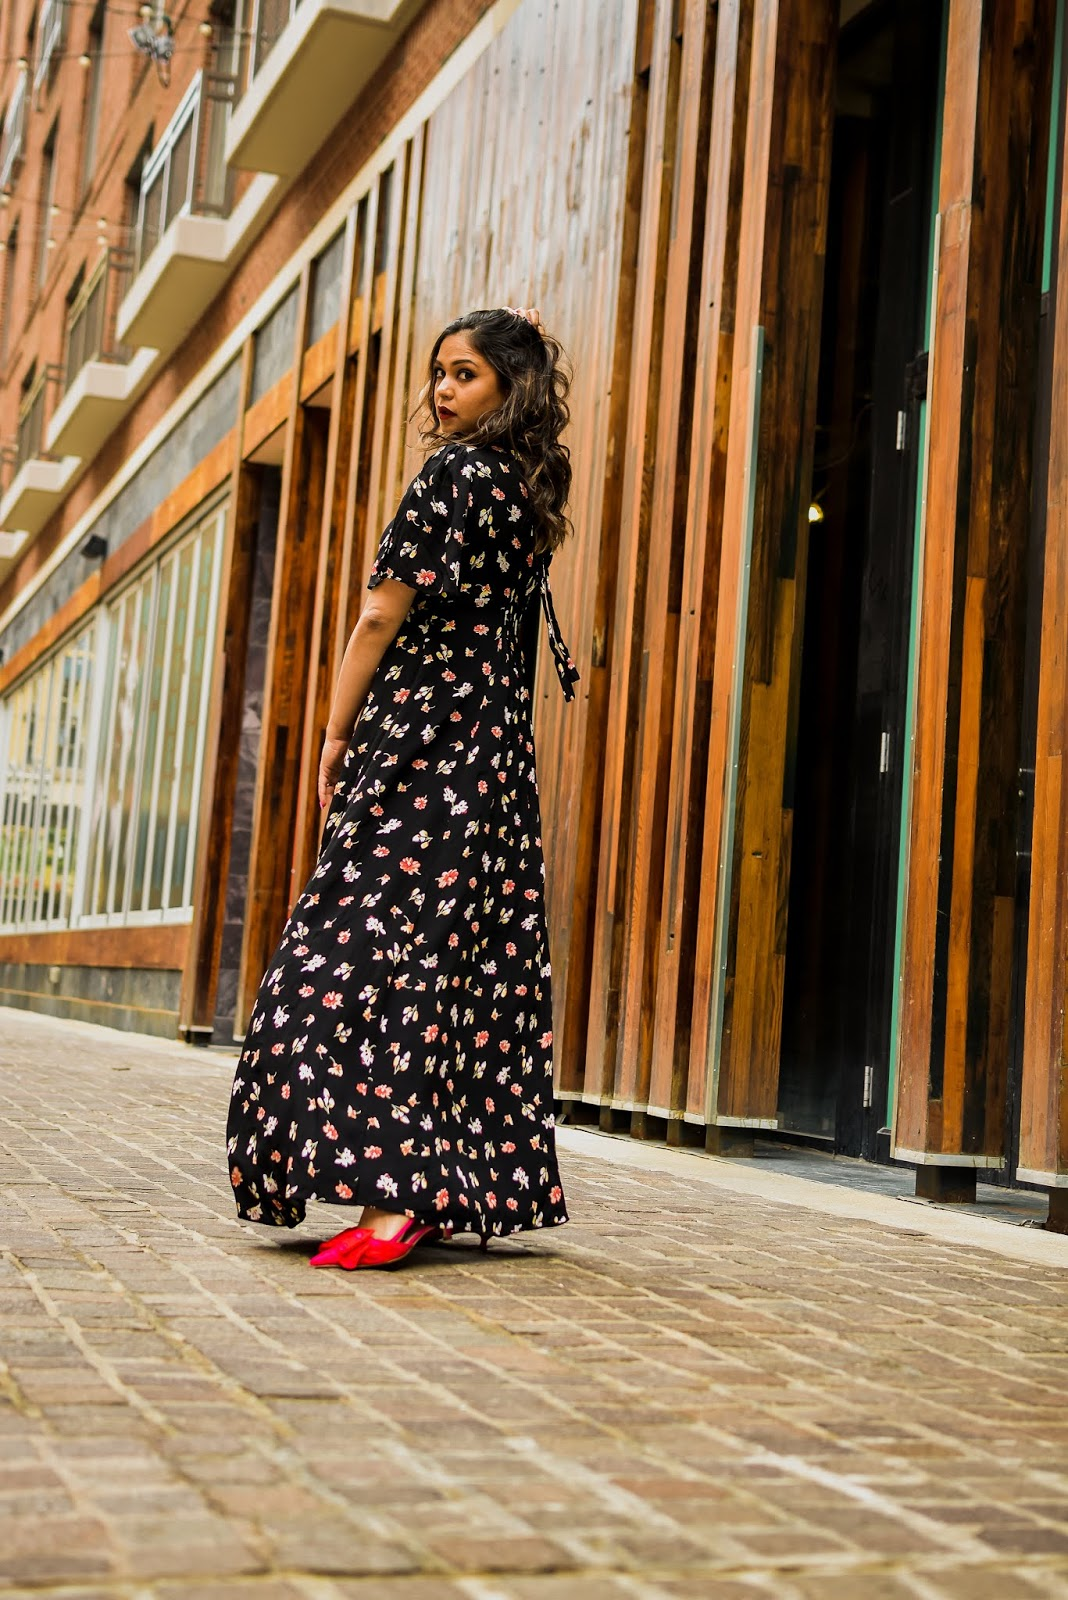 black rent the runway dress, gold mettalic jacket, bow pumps, kate spade heart heels, bauble bar earrings, dc blogger, style, fashion, street style, saumy shiohare, myriad musings